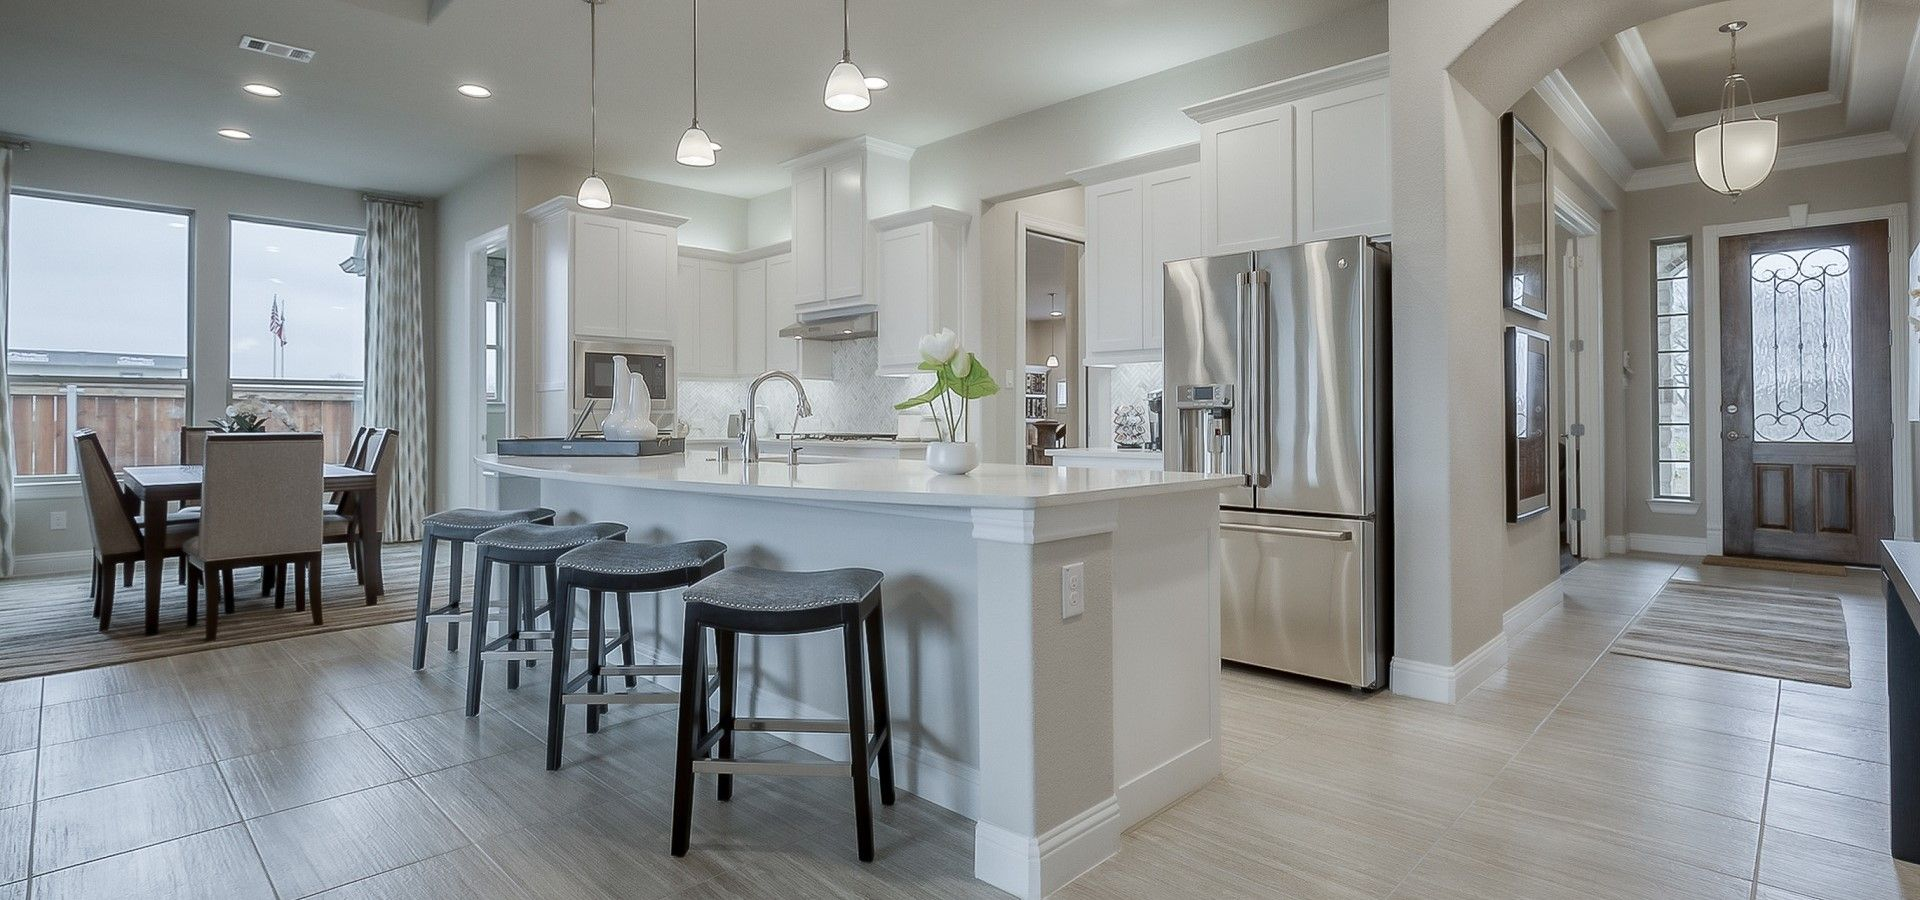 Kitchen featured in the Brookville By Chesmar Homes in Dallas, TX